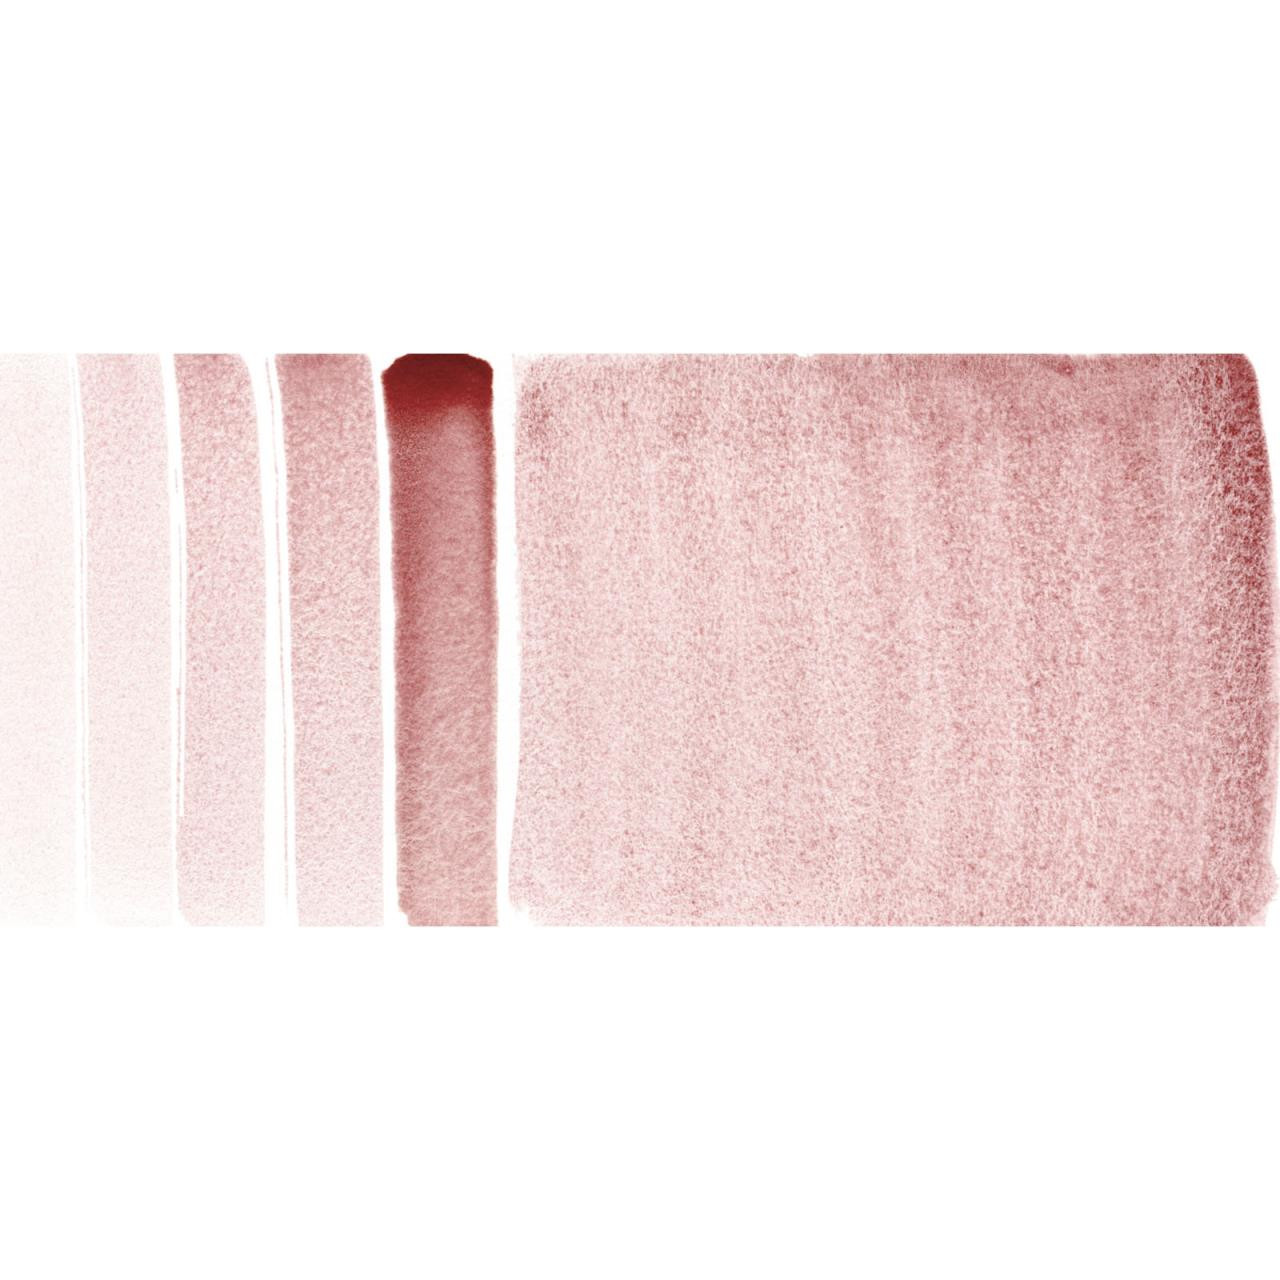 Potter's Pink, DANIEL SMITH Extra Fine Watercolors 15ml Tubes -